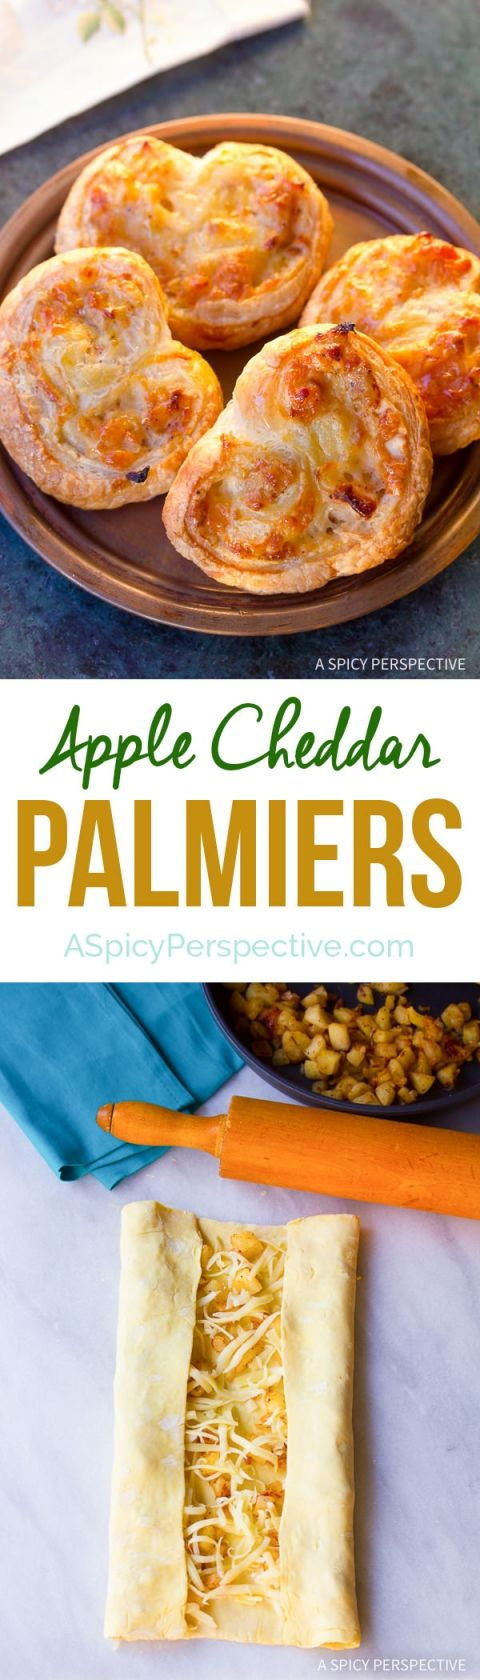 These Easy Apple Cheddar Palmiers on ASpicyPerspective.com are great ...